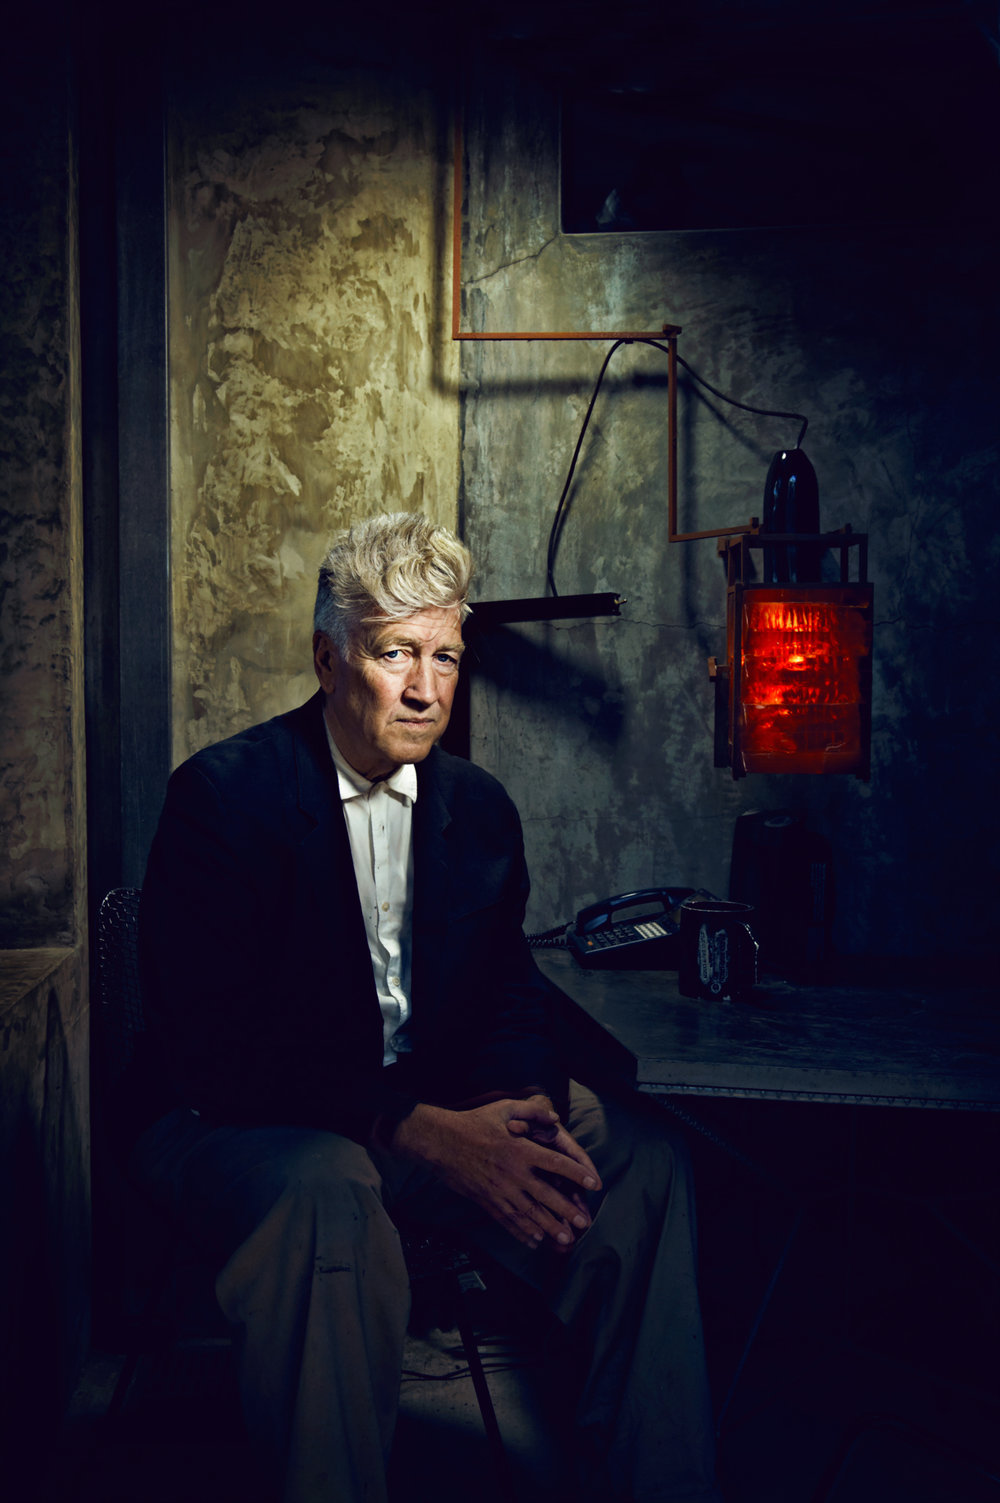 david-lynch-low-res.jpg